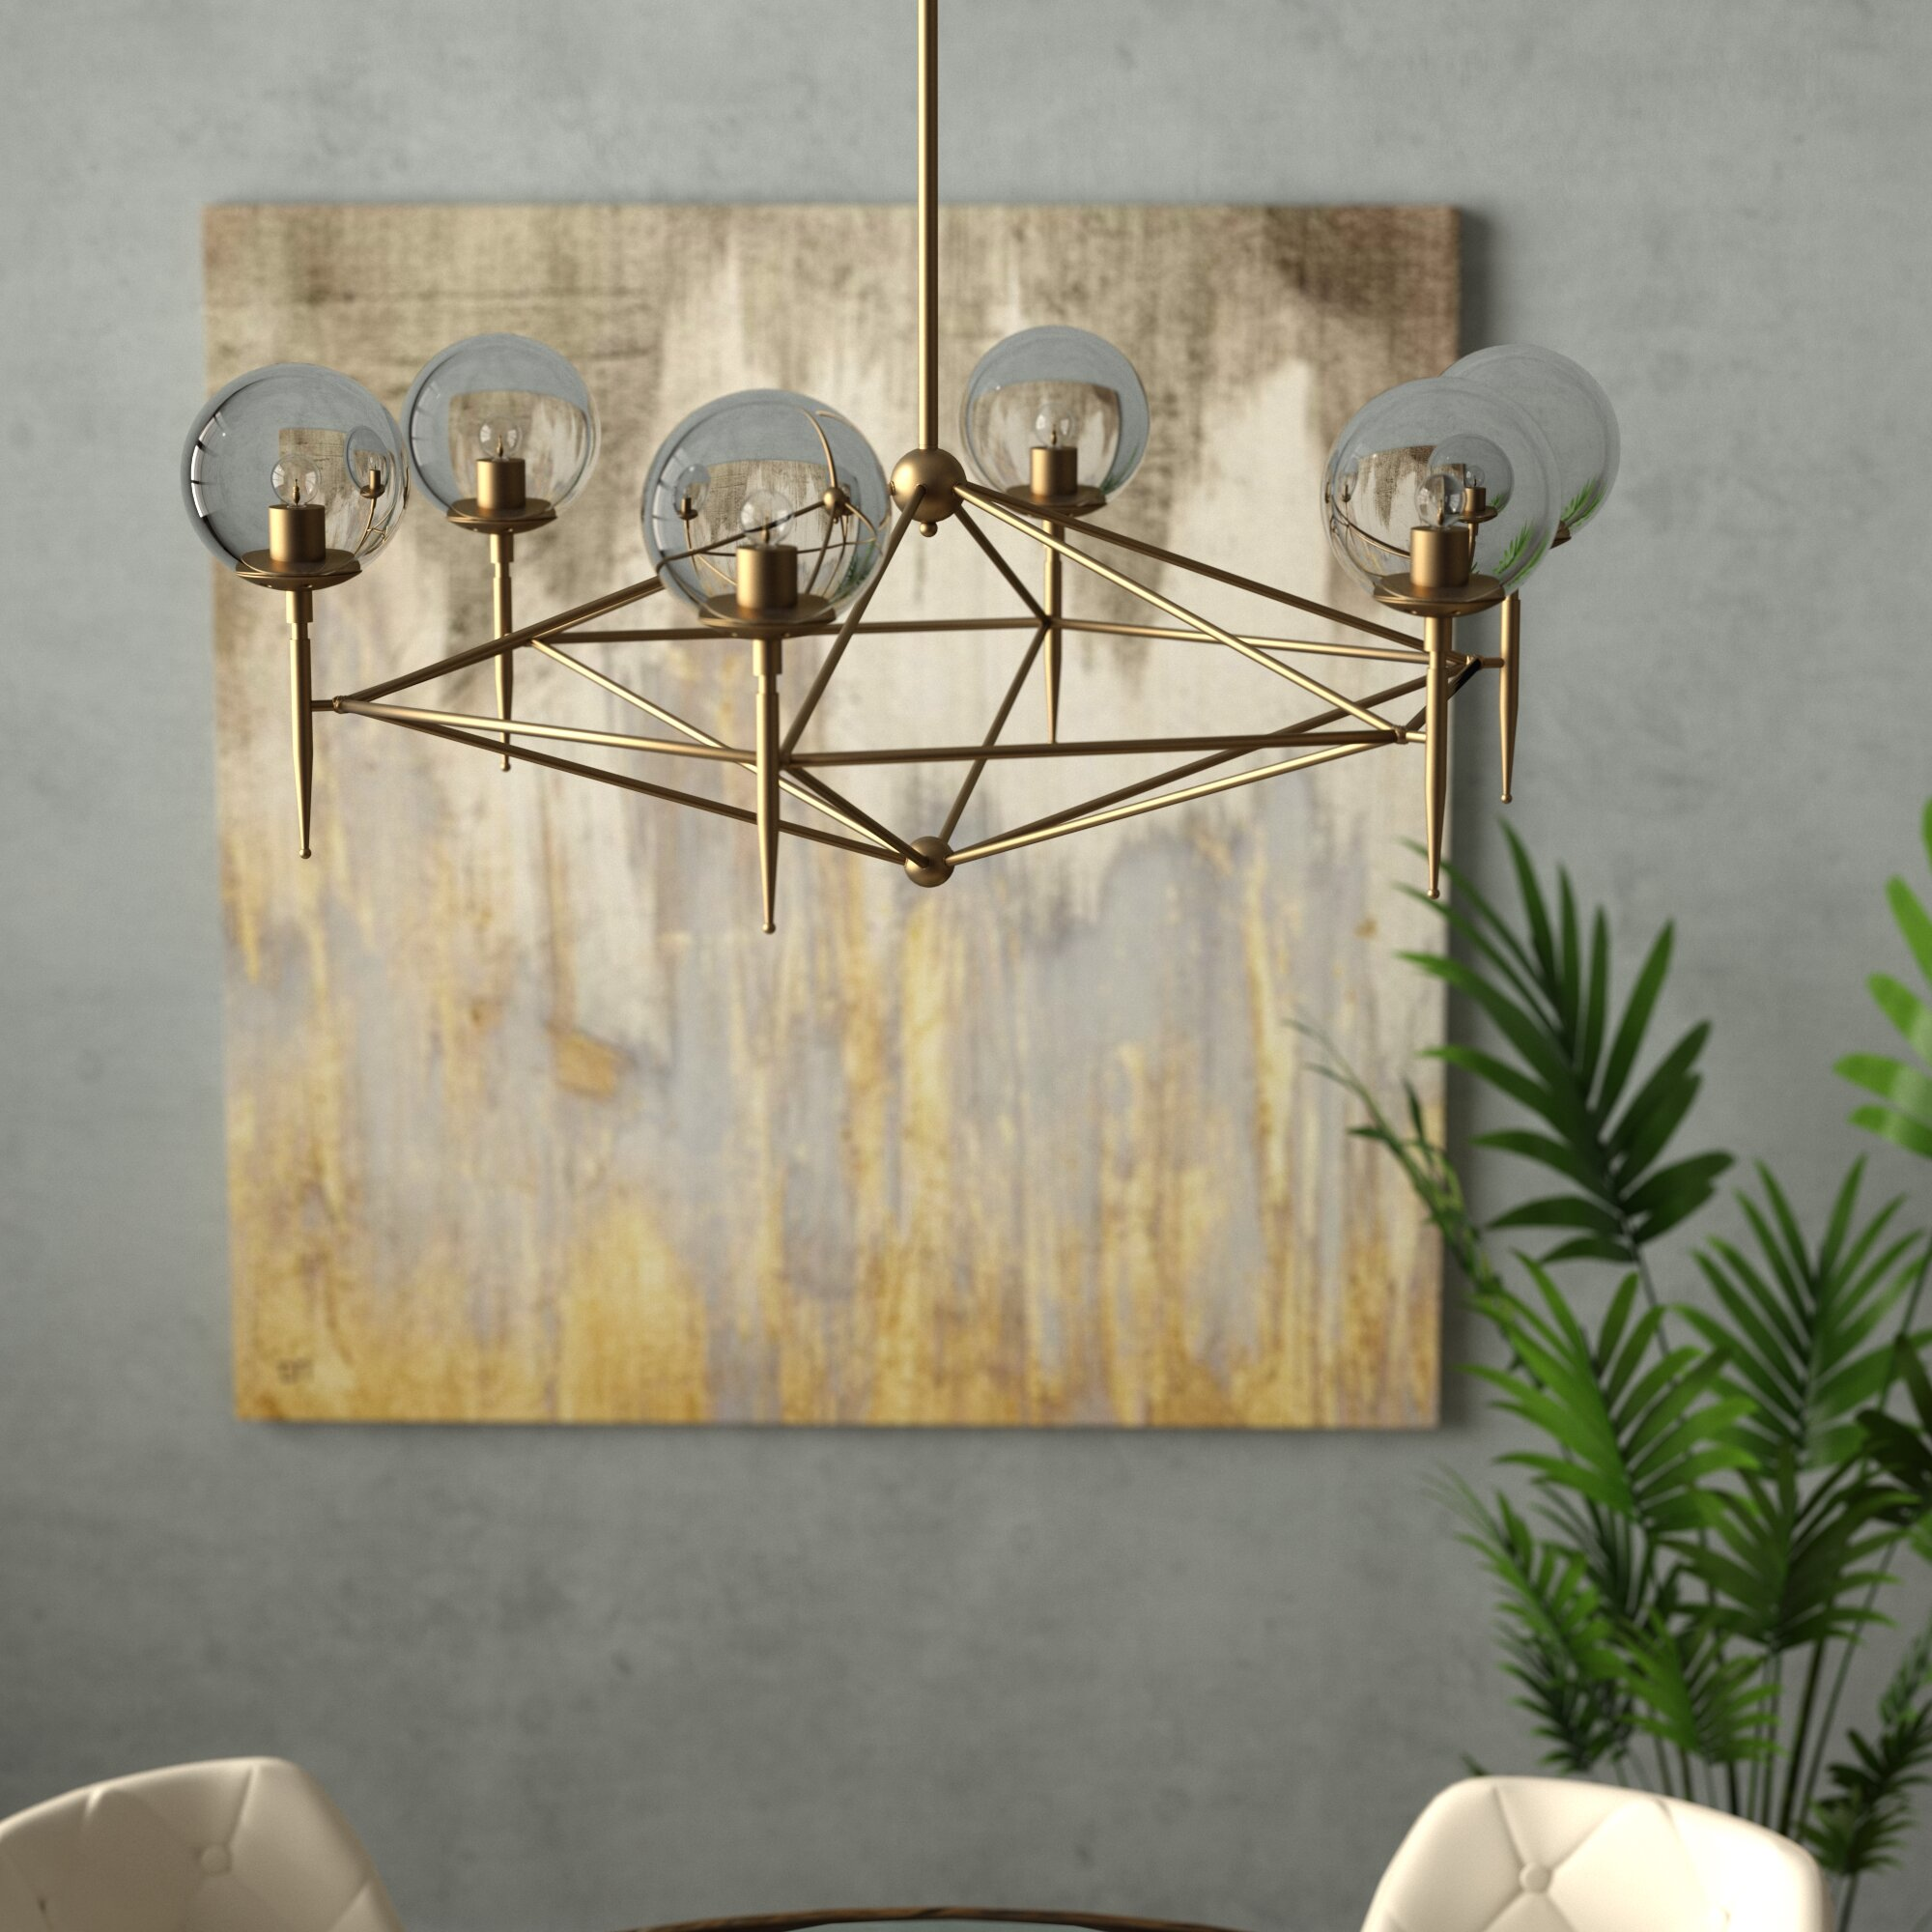 Ivy Bronx Eastbourne 6 Light Unique Statement Geometric Chandelier Reviews Wayfair